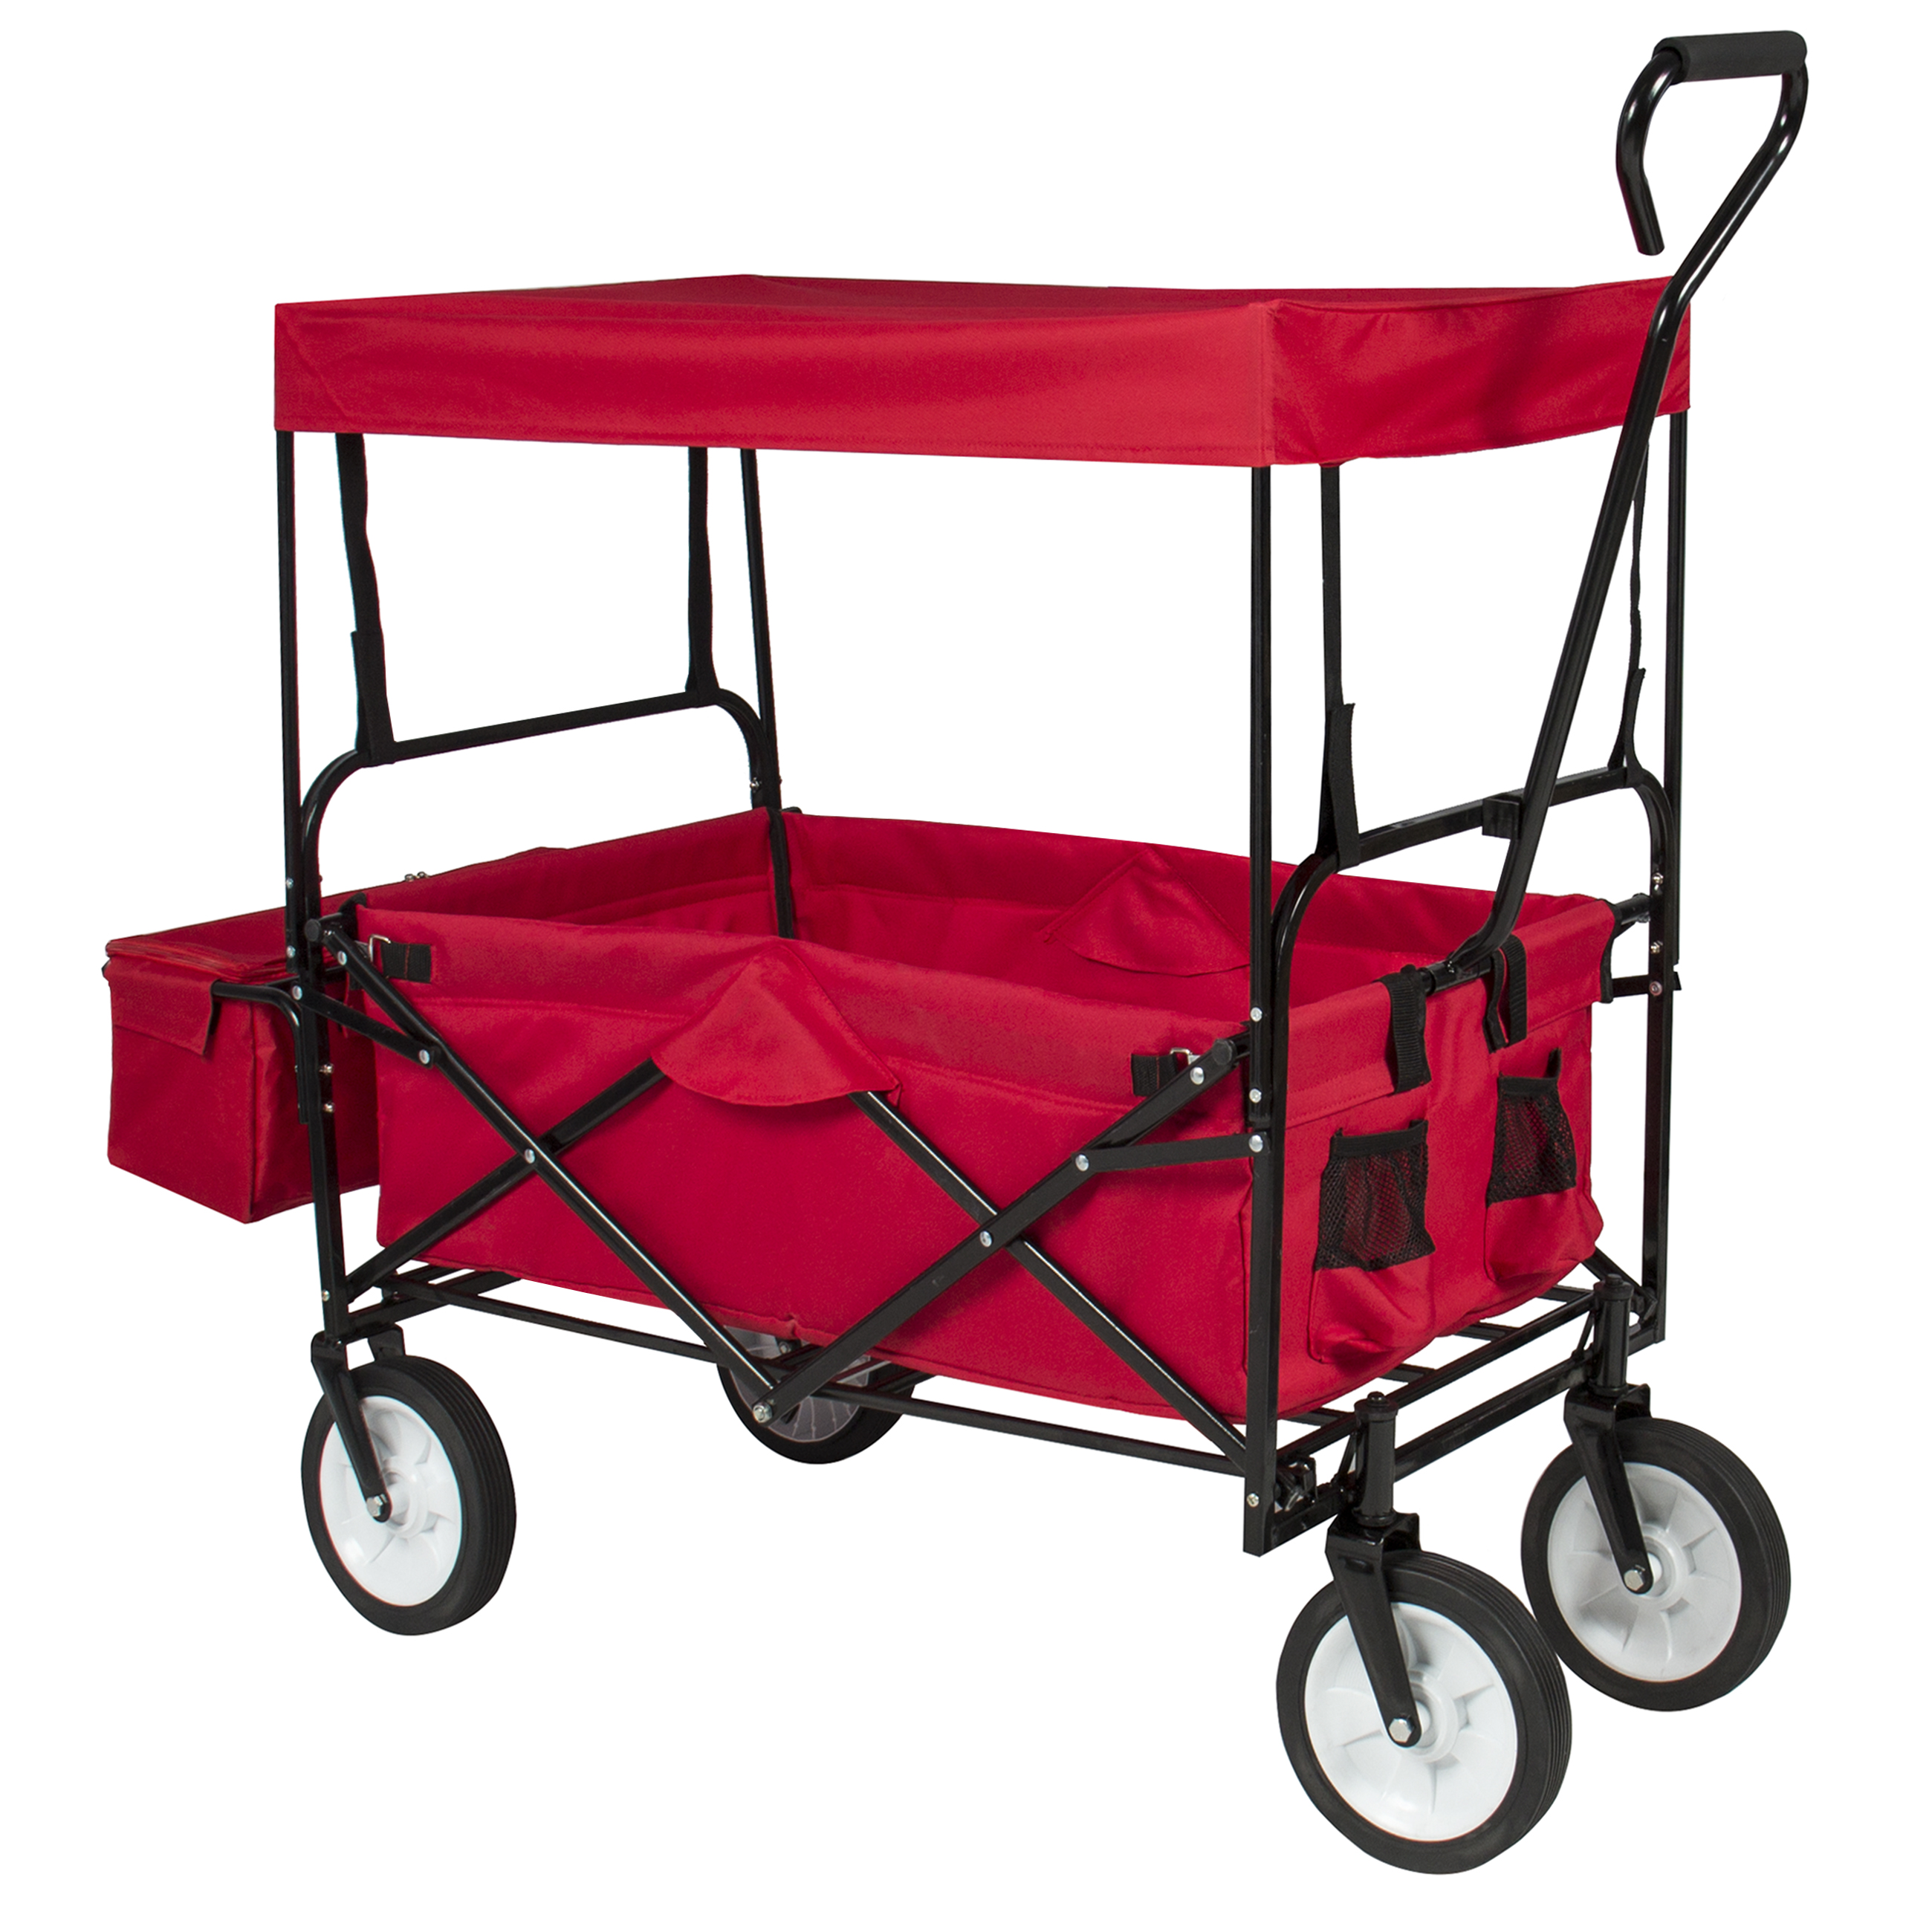 dbf6ccad34d2 Best Choice Products Folding Utility Cargo Wagon Cart for Beach, Camping,  Groceries w/ Removable Canopy, Cup Holders - Red